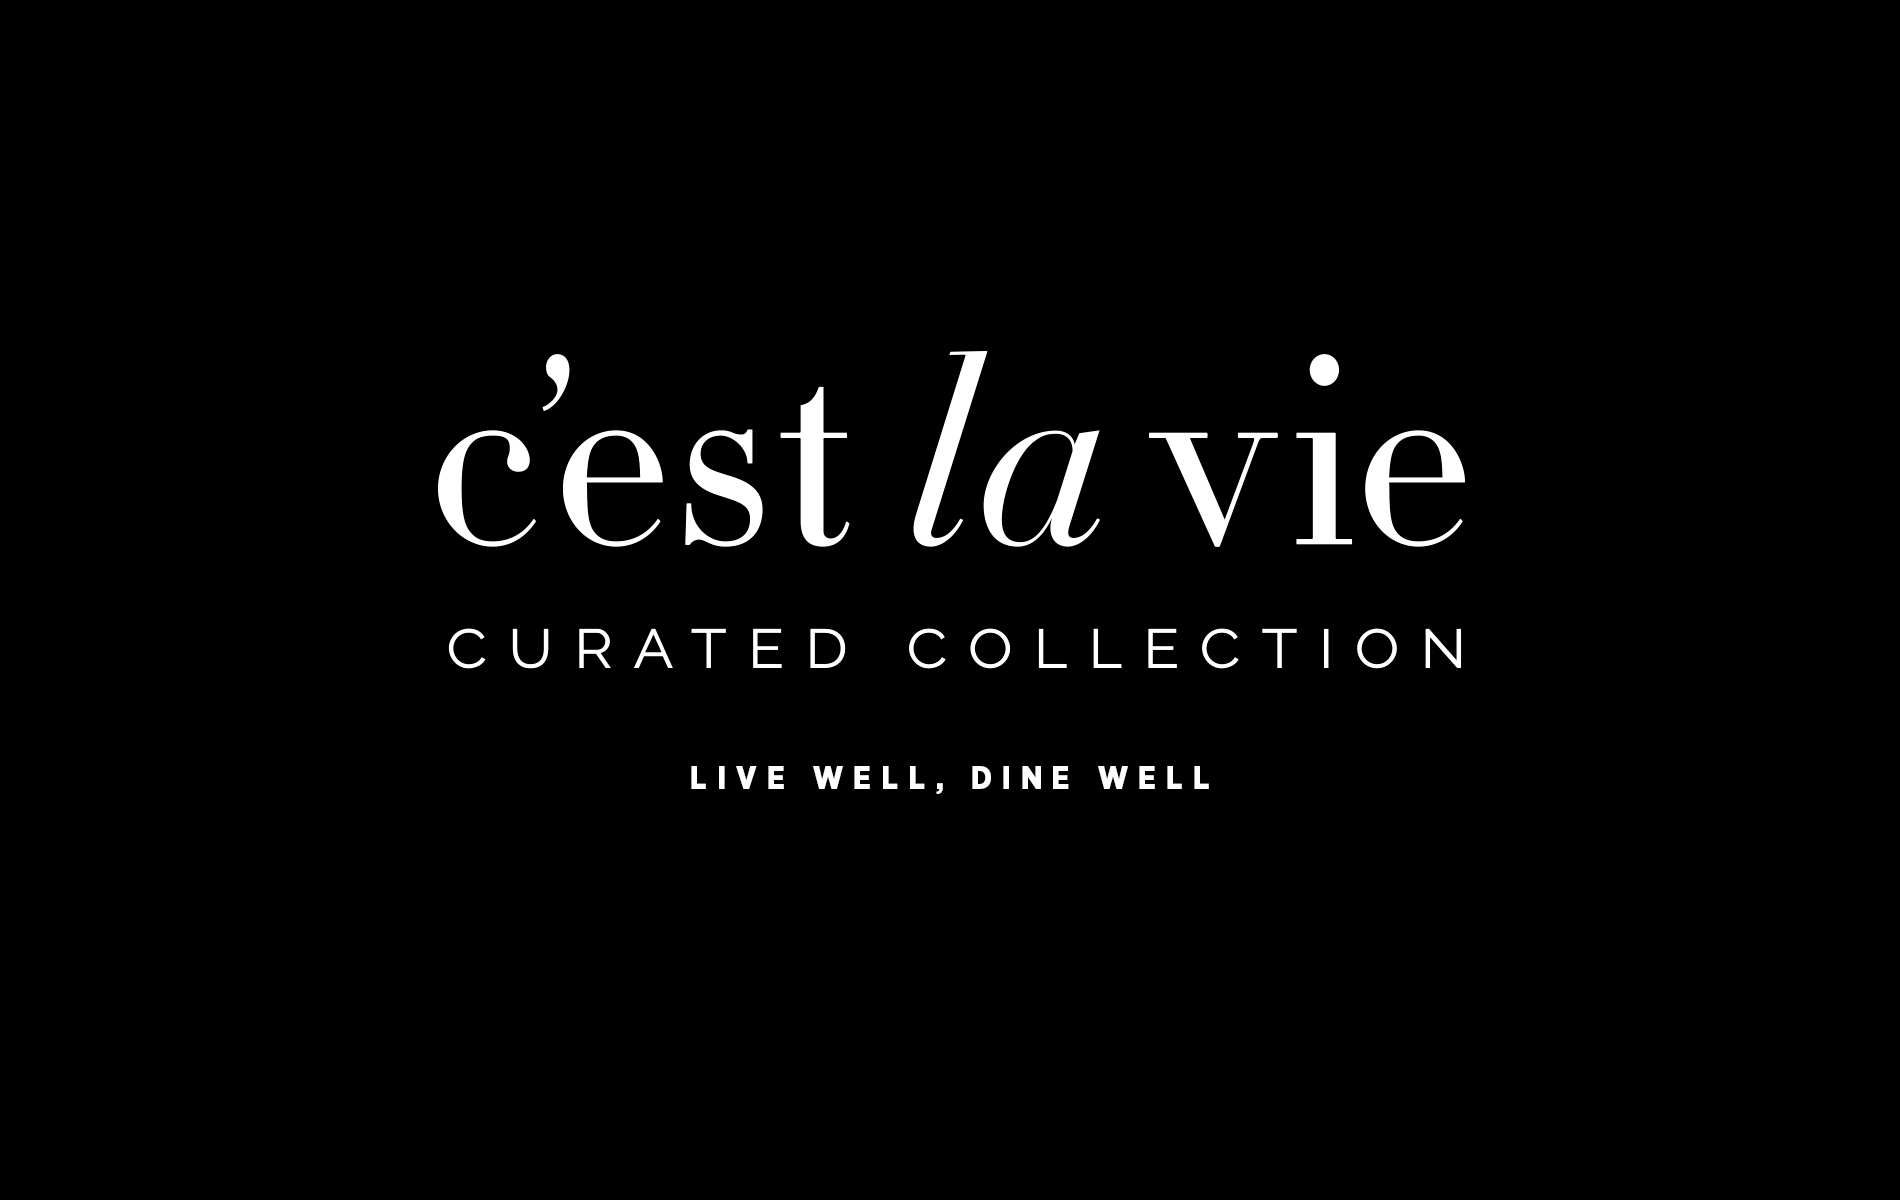 vie magazine c'est la vie may 2019 culinary issue, live well dine well